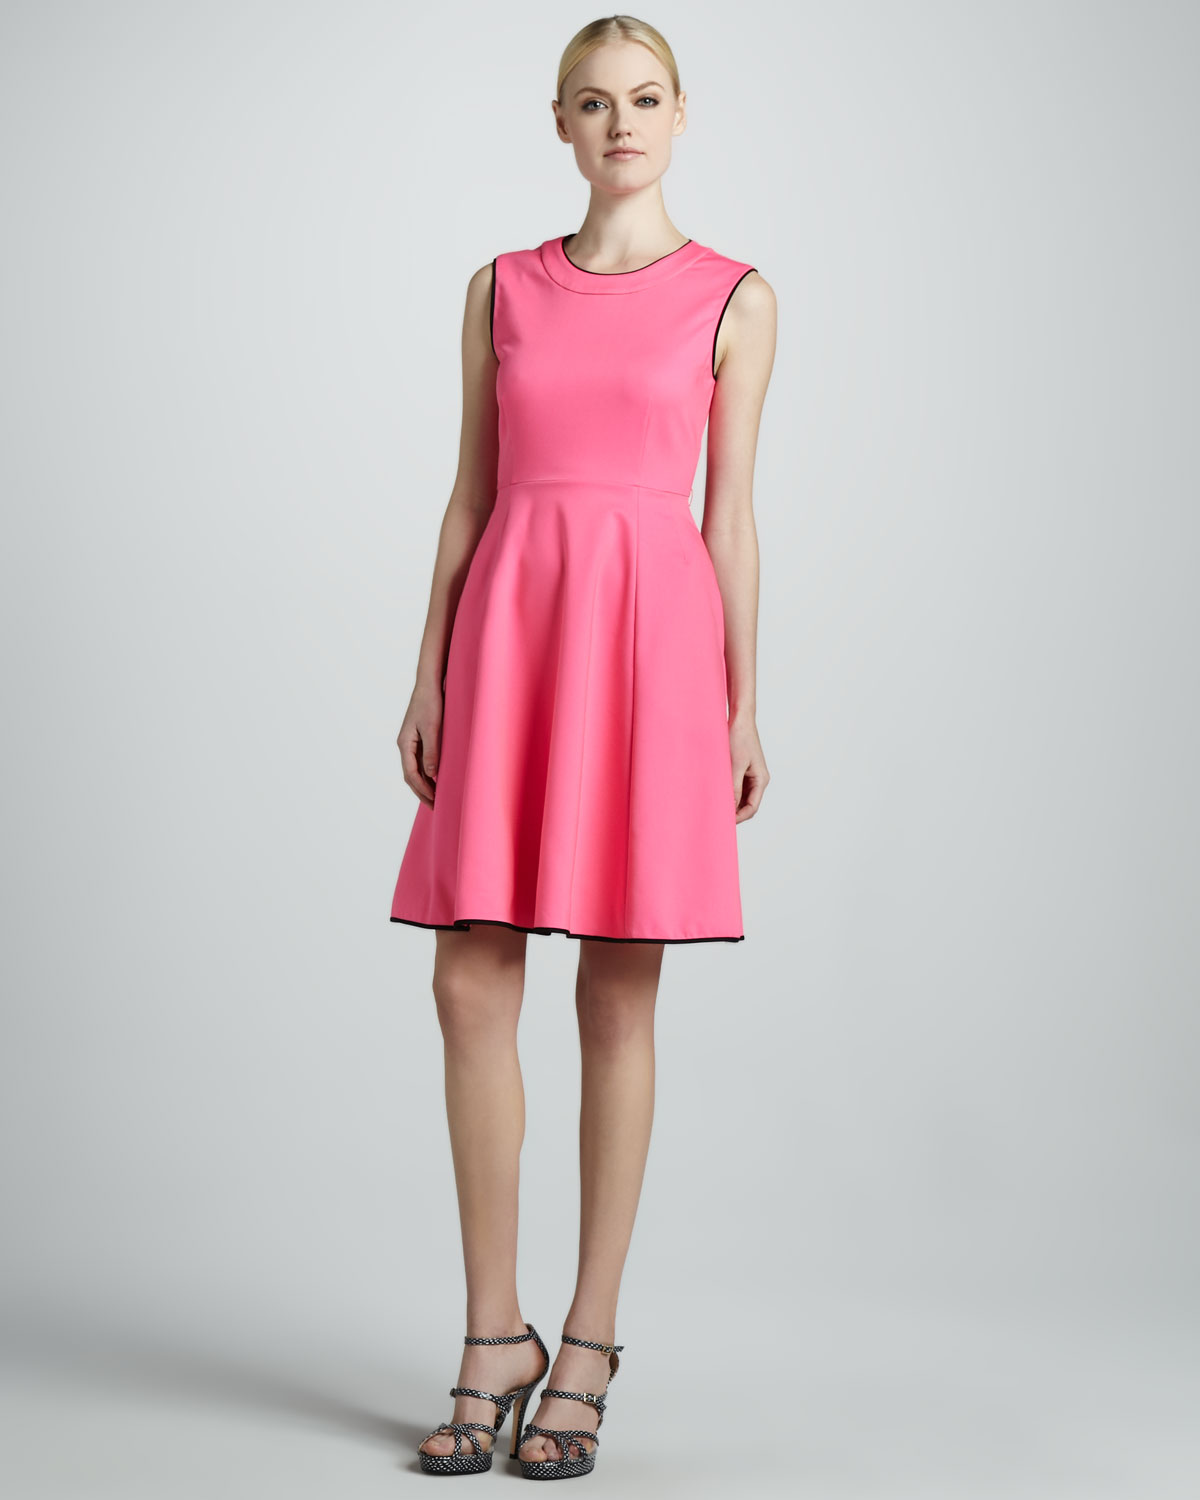 Kate spade new york carol sleeveless flare dress in pink lyst gallery previously sold at neiman marcus ombrellifo Choice Image